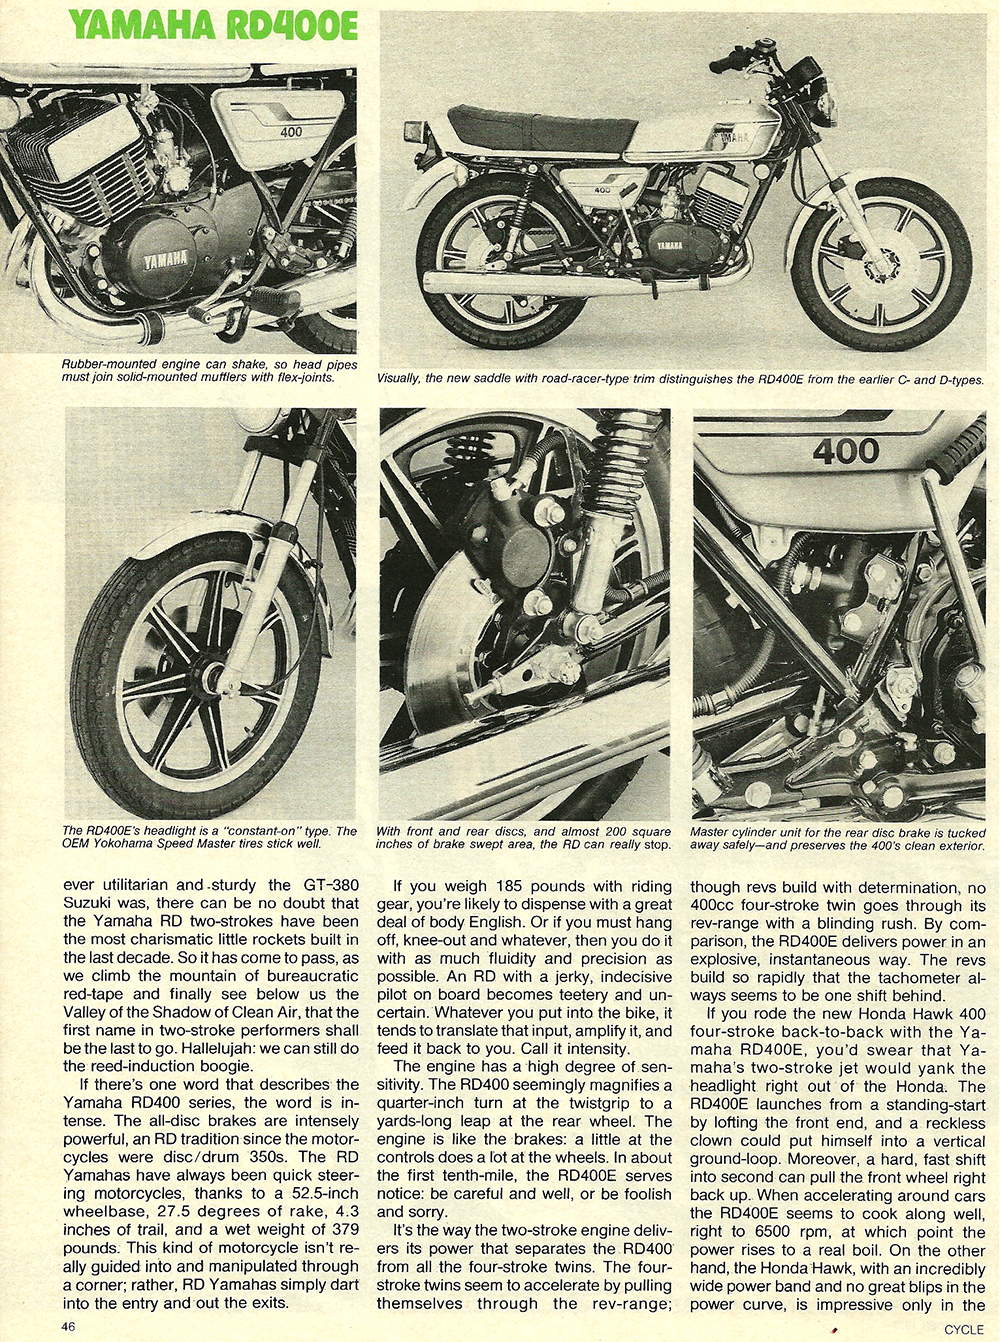 1977 Yamaha RD400E road test 3.jpg